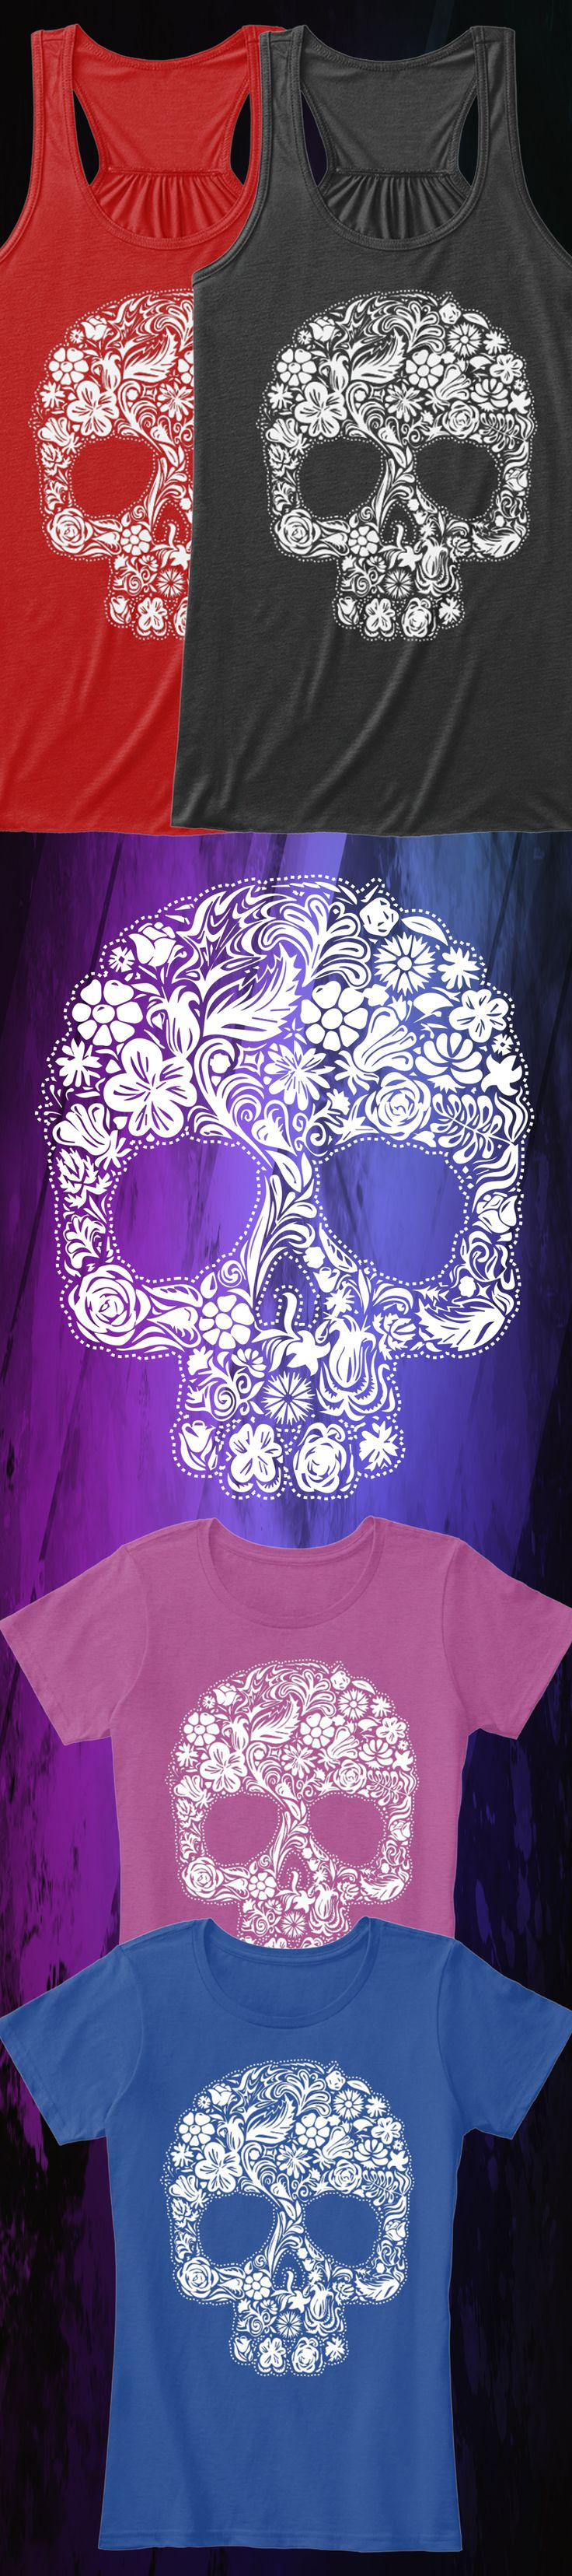 Shugar Skull - Limited Edition. Buy 2 or more, save on shipping! Grab yours or gift it to a friend. You will both love it